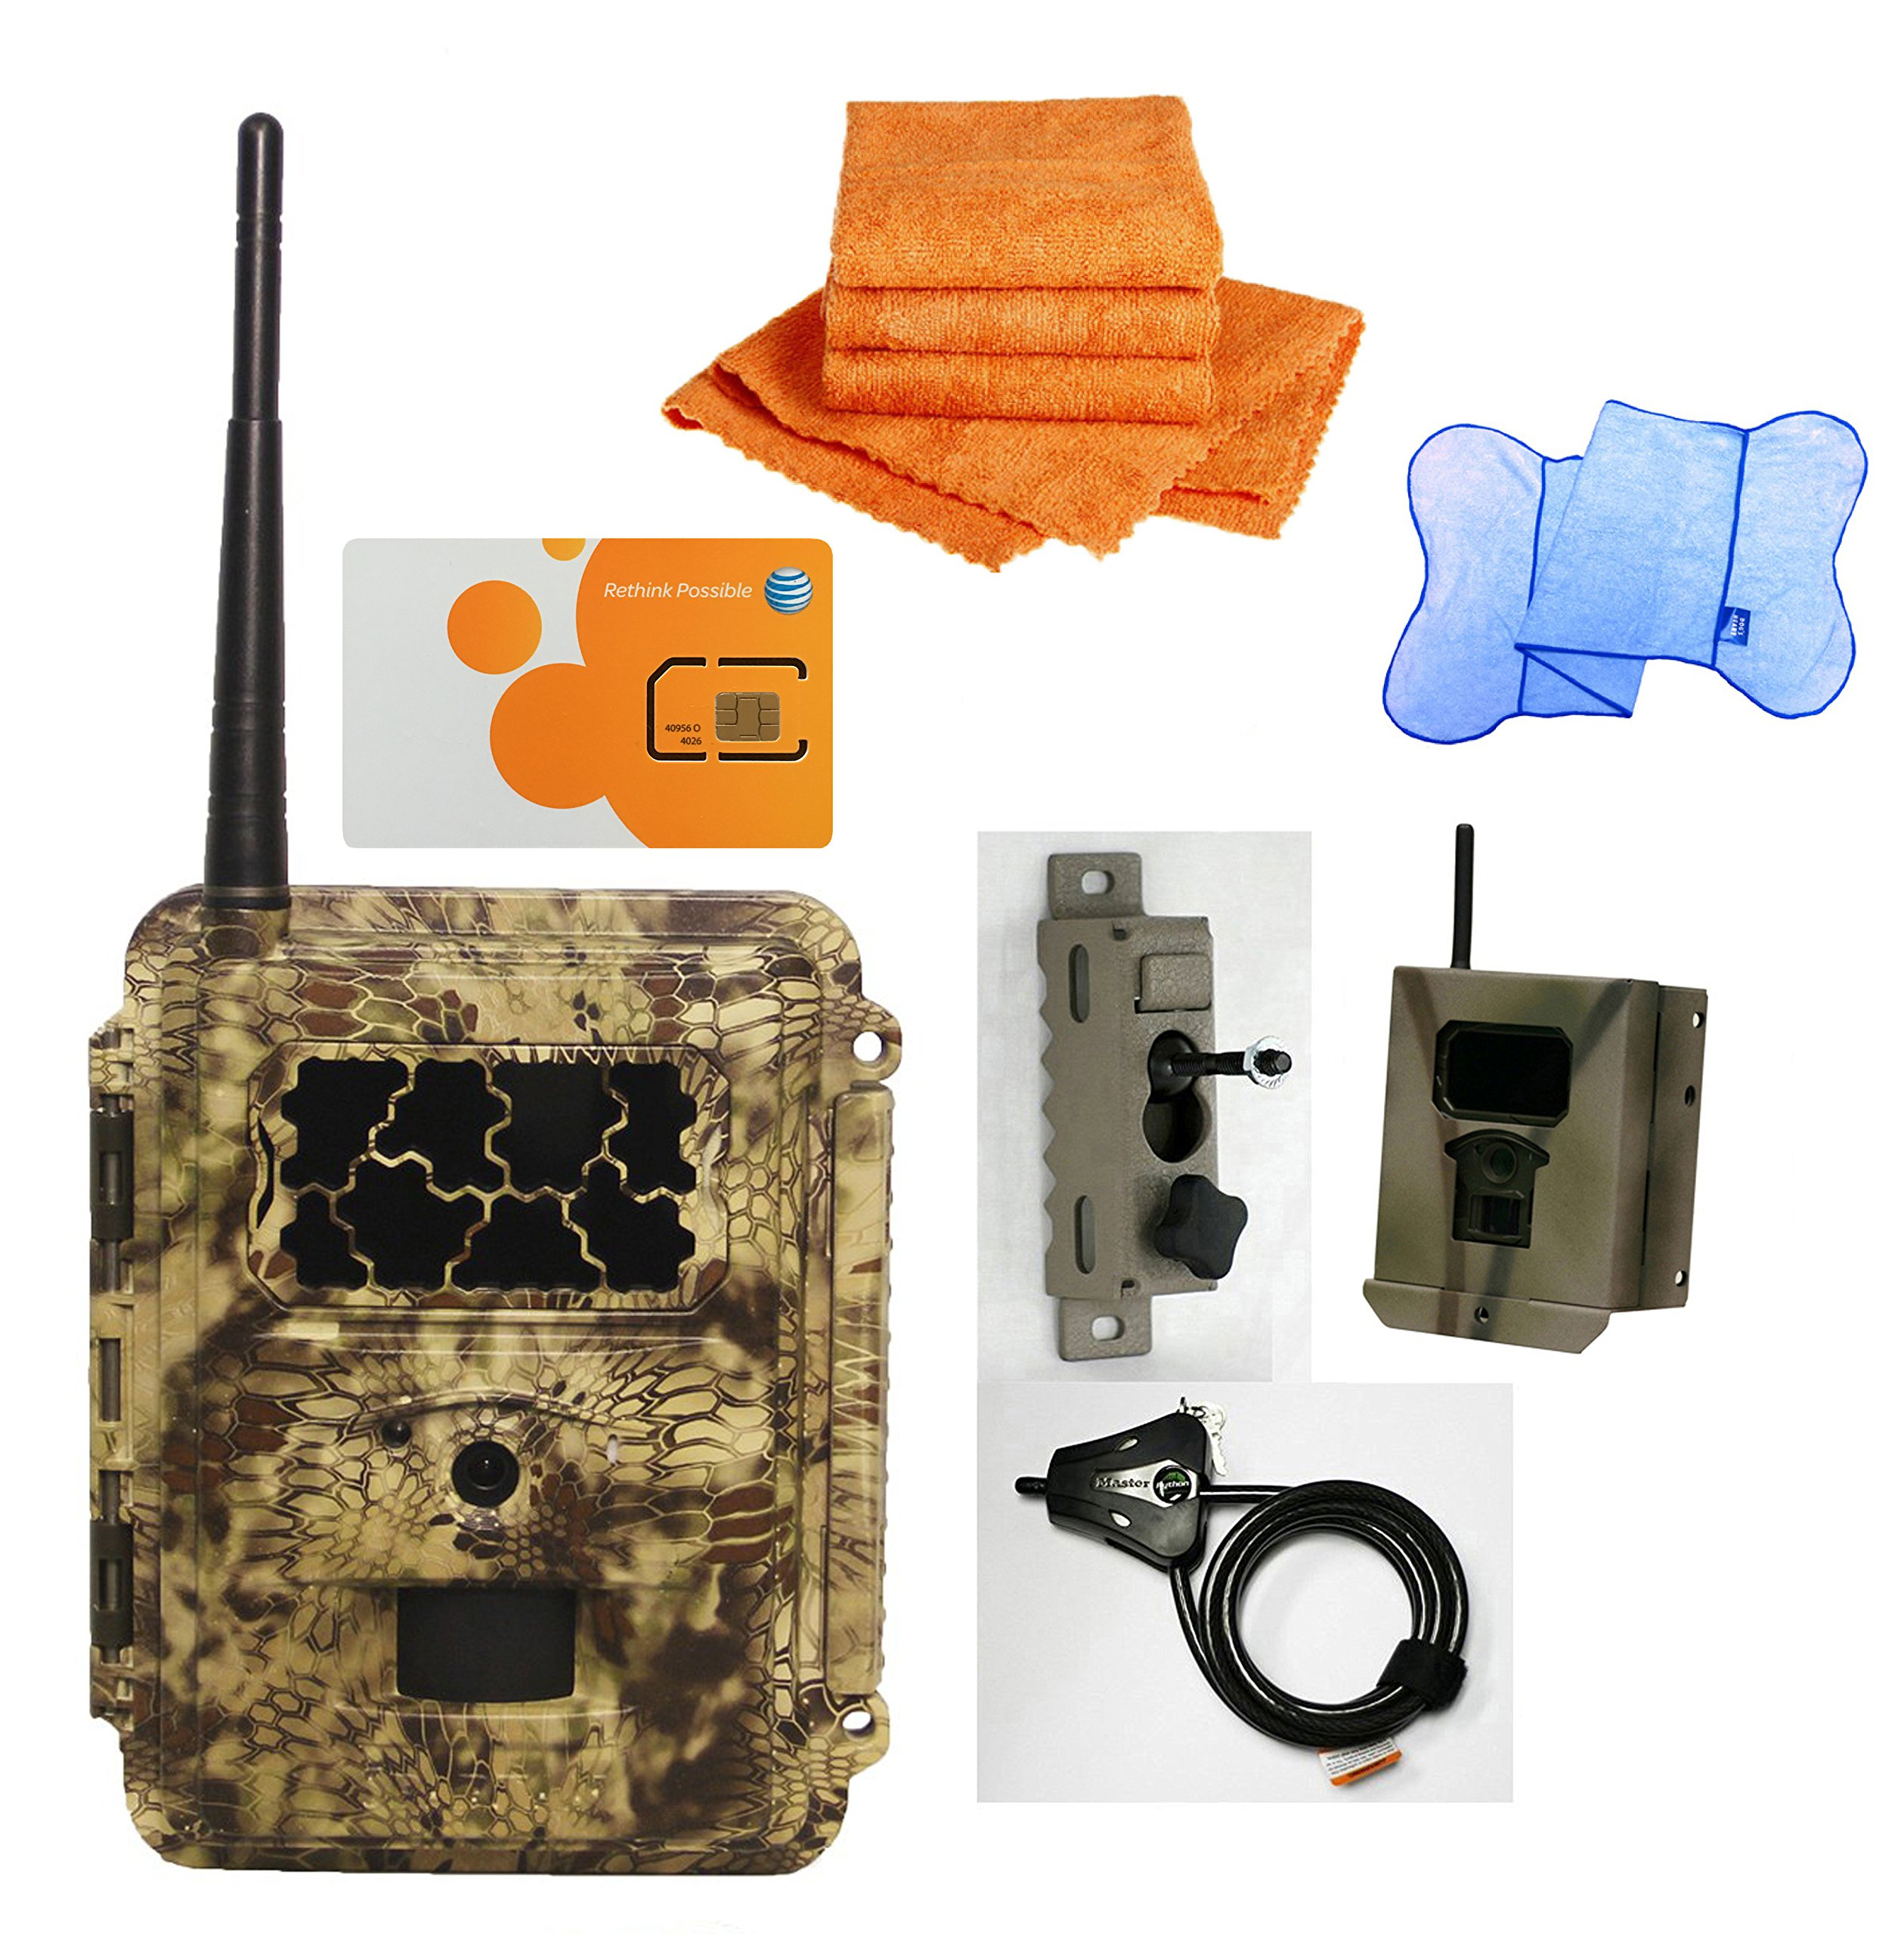 Spartan HD GoCam Deluxe Package Deal (2-year warranty) (AT&T, Blackout Infrared) by HCO Outdoor Products (Image #1)